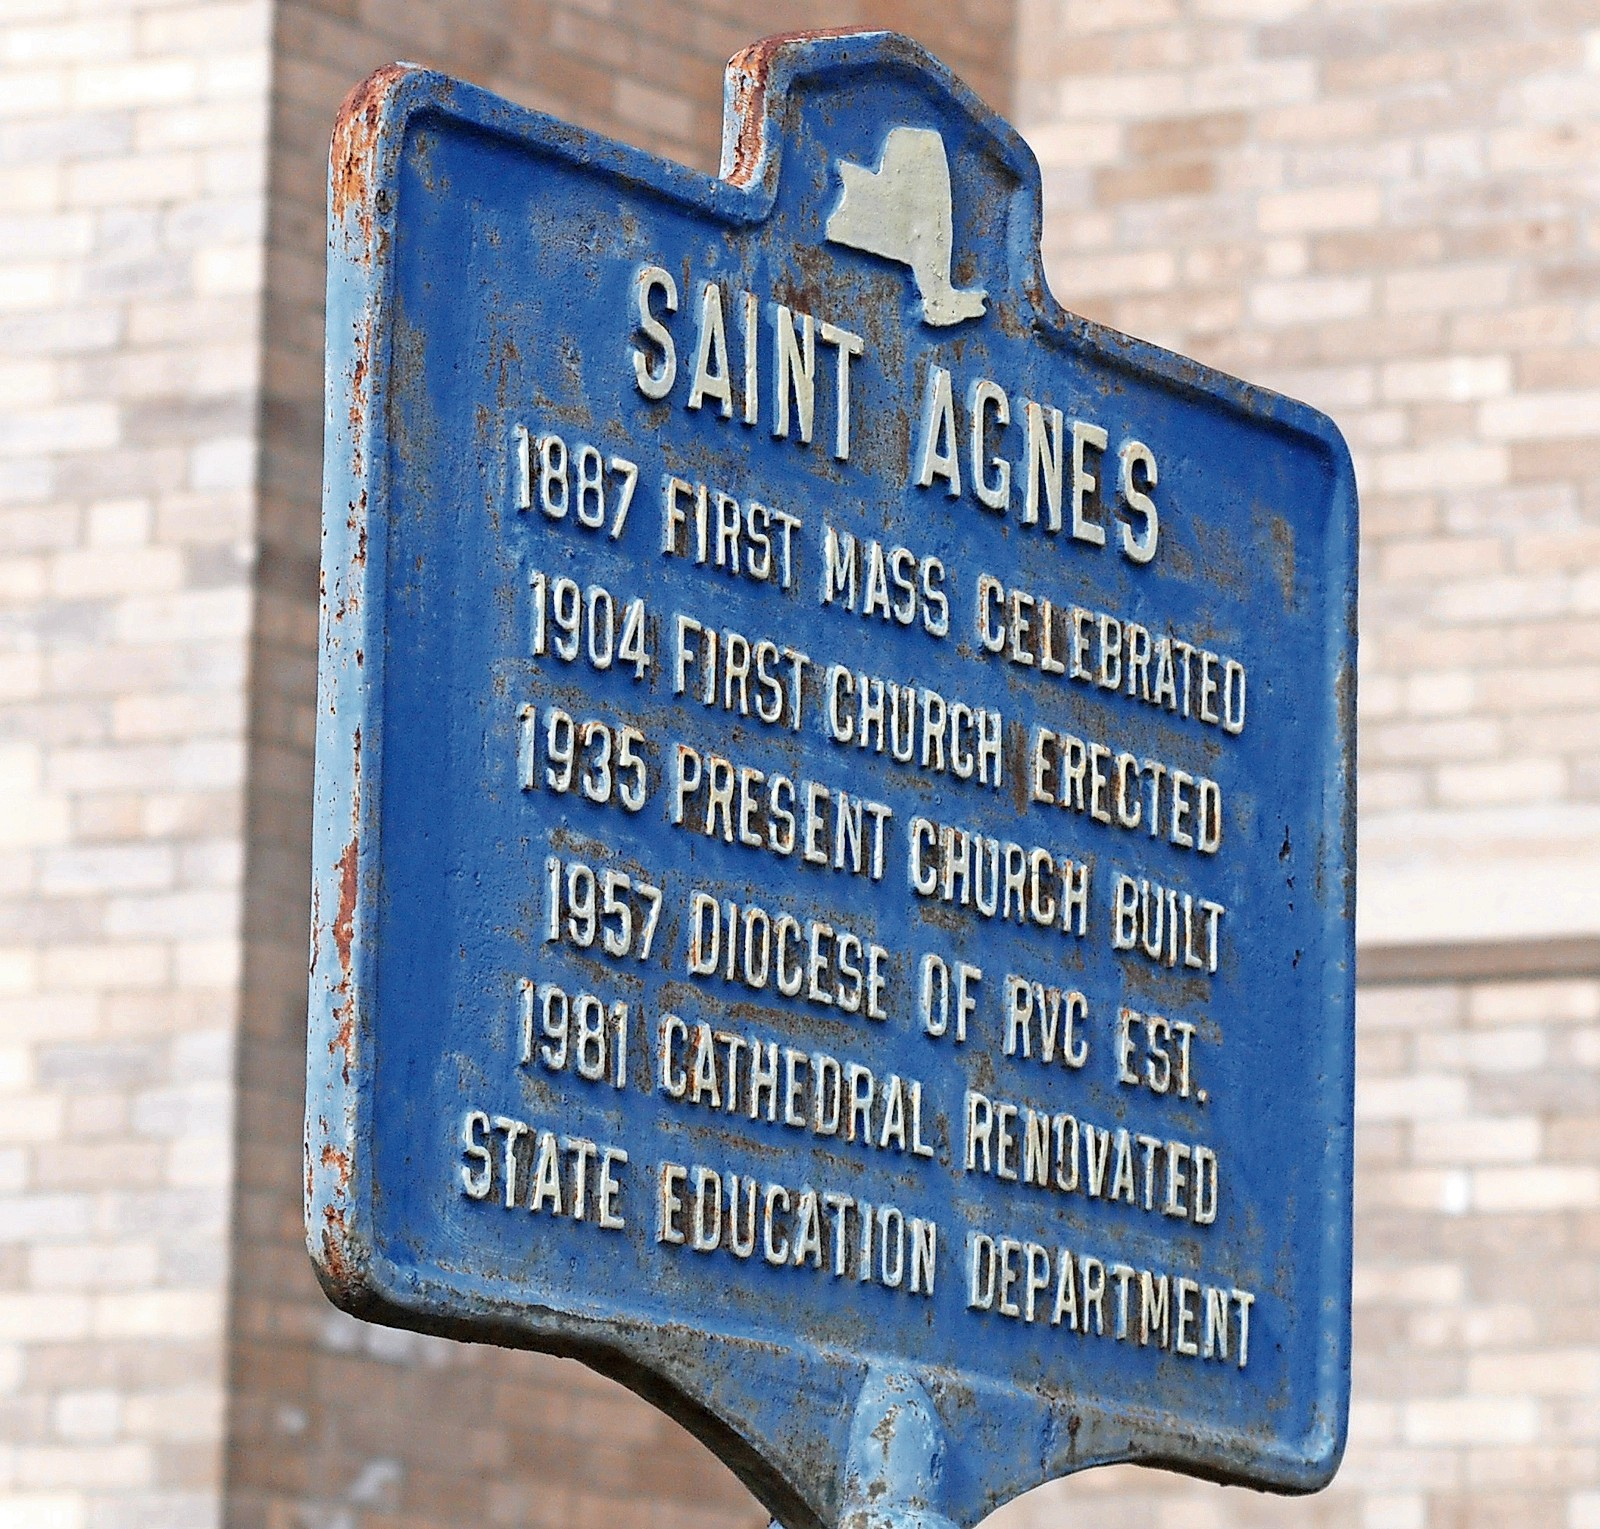 St. Agnes is Long Island's only Roman Catholic cathedral, and one of the Island's most historic houses of worship.